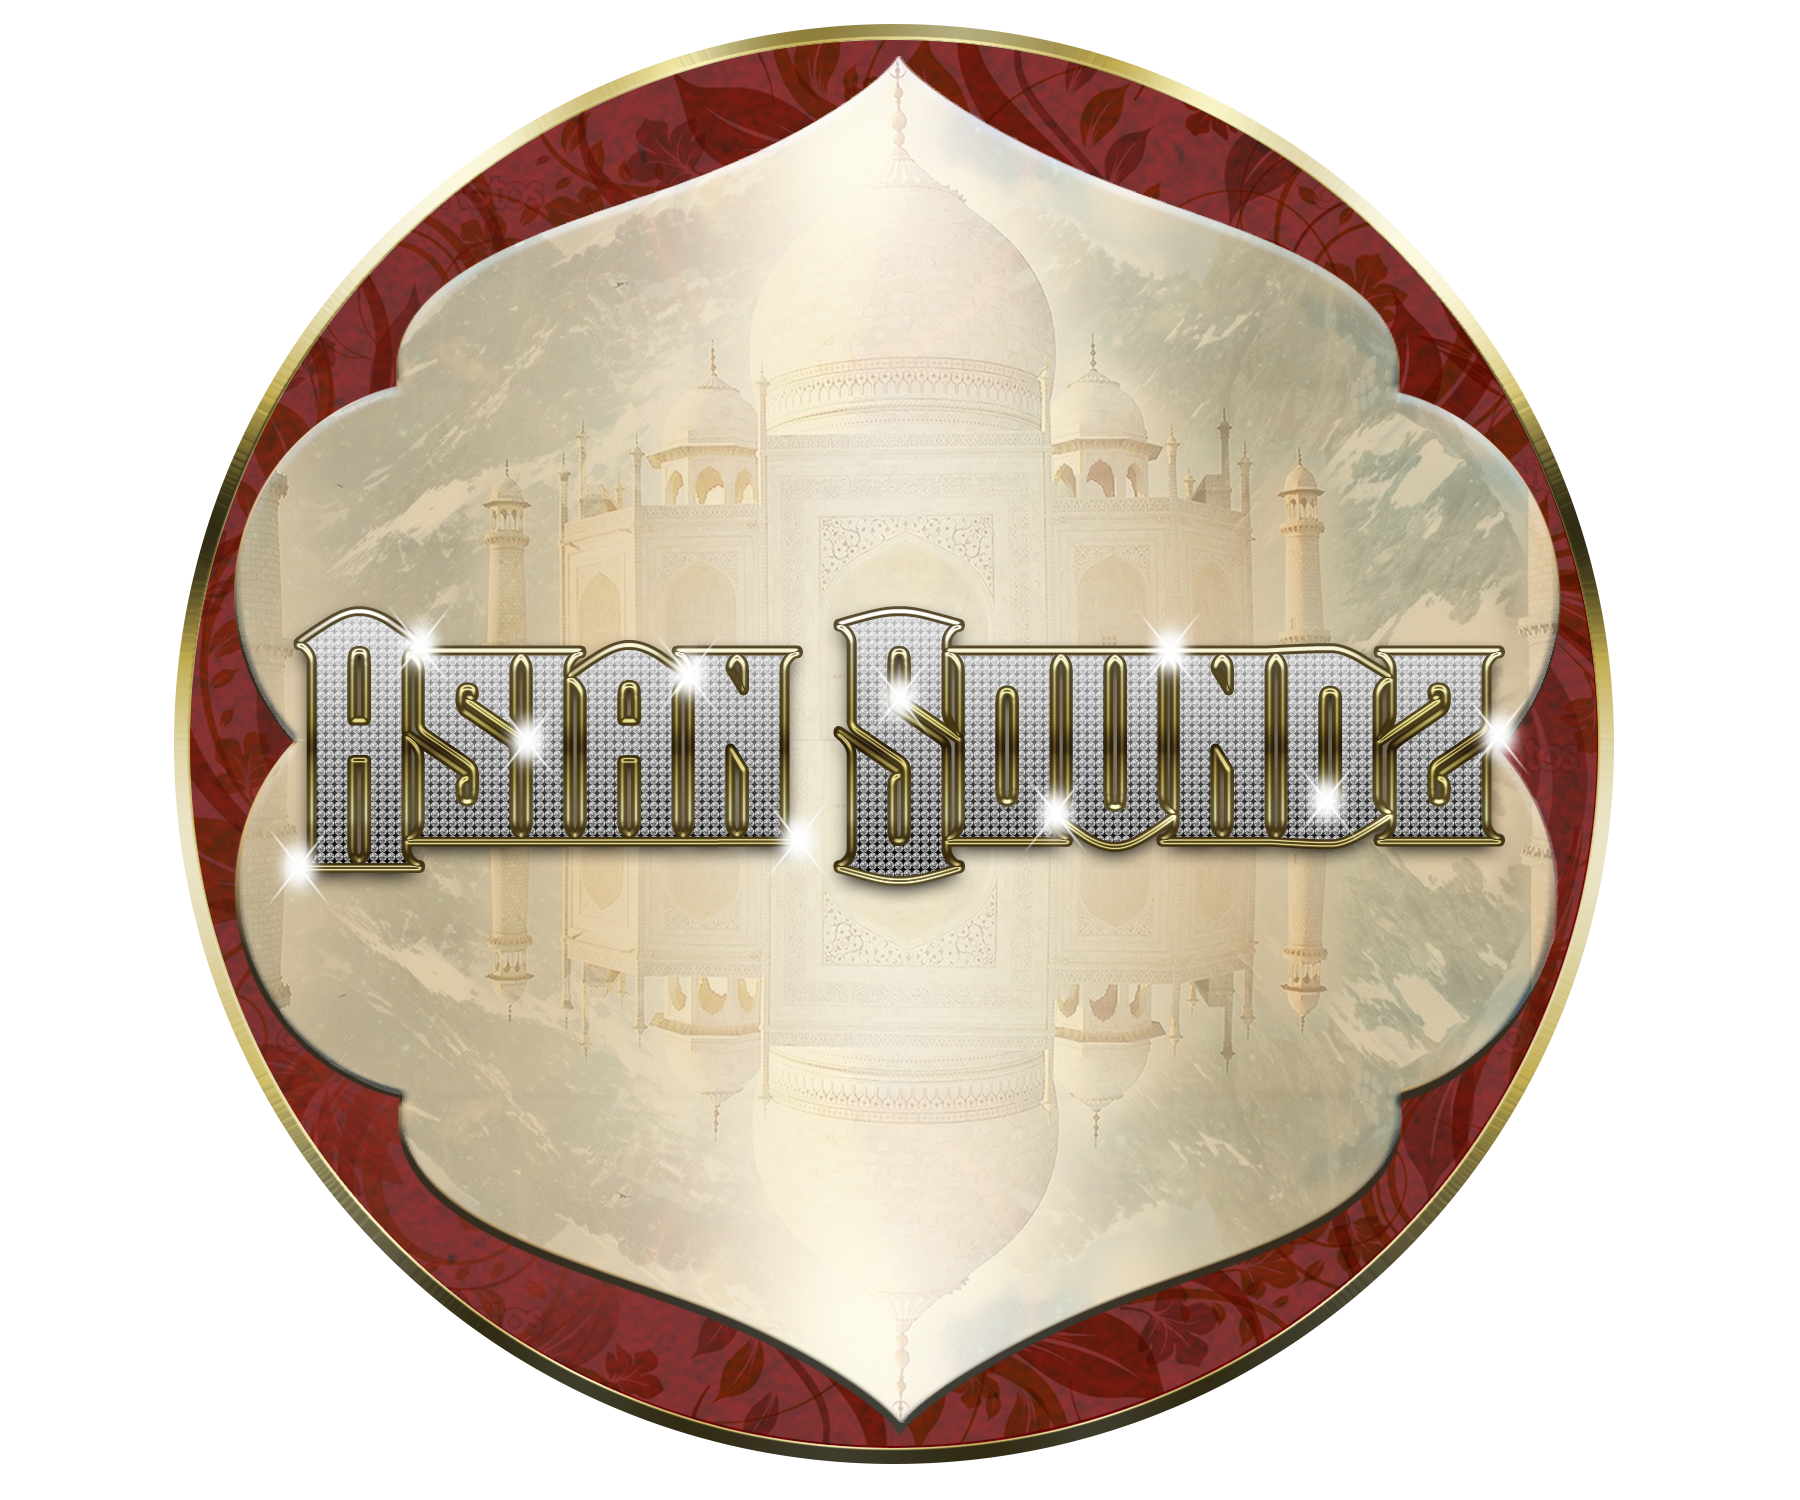 Asian Soundz Dallas